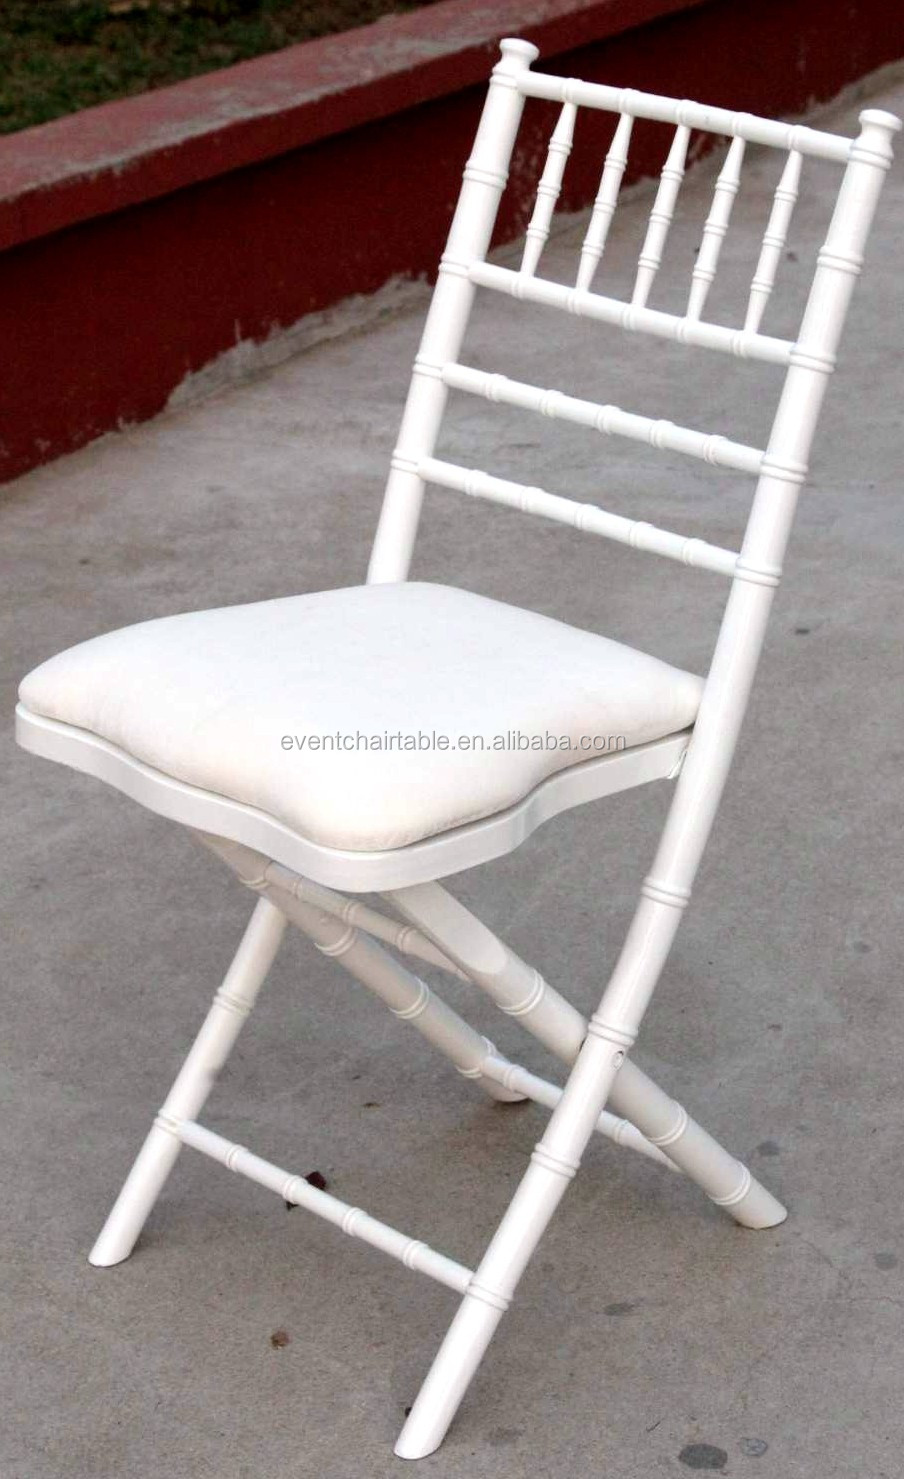 Gladiator chair wholesale white resin folding chair View